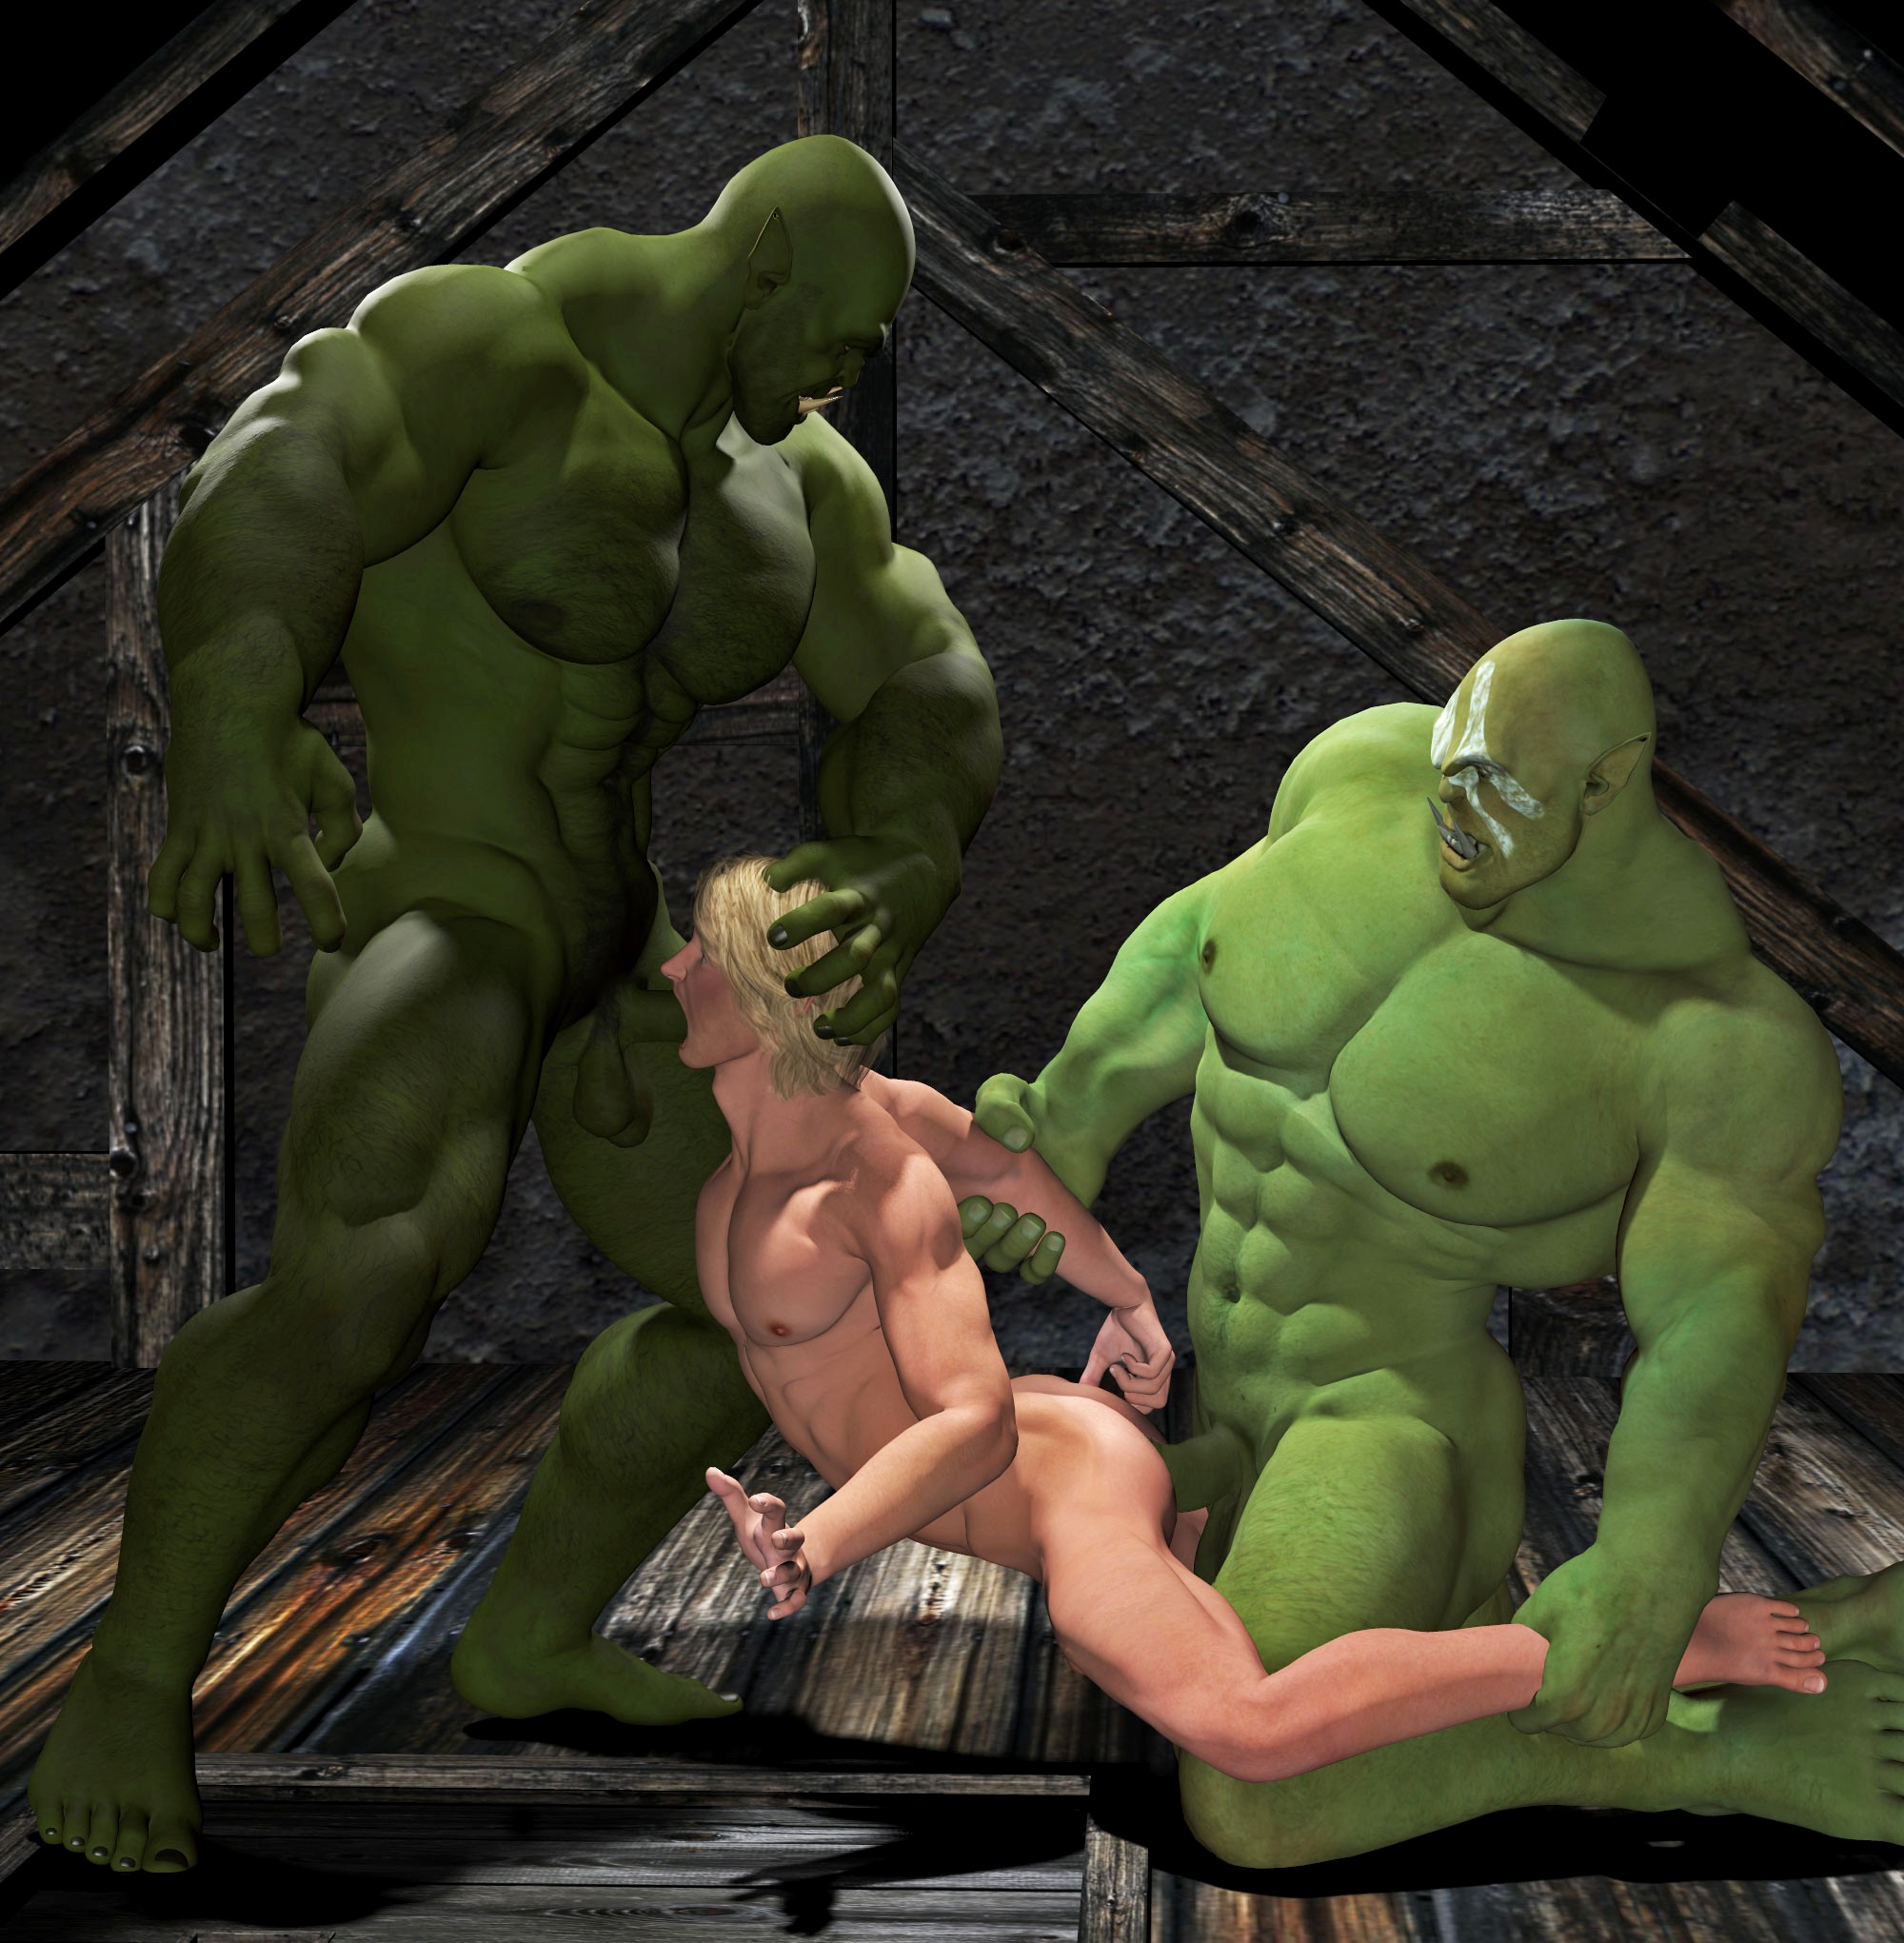 Gay elves fucking erotic muscle girls